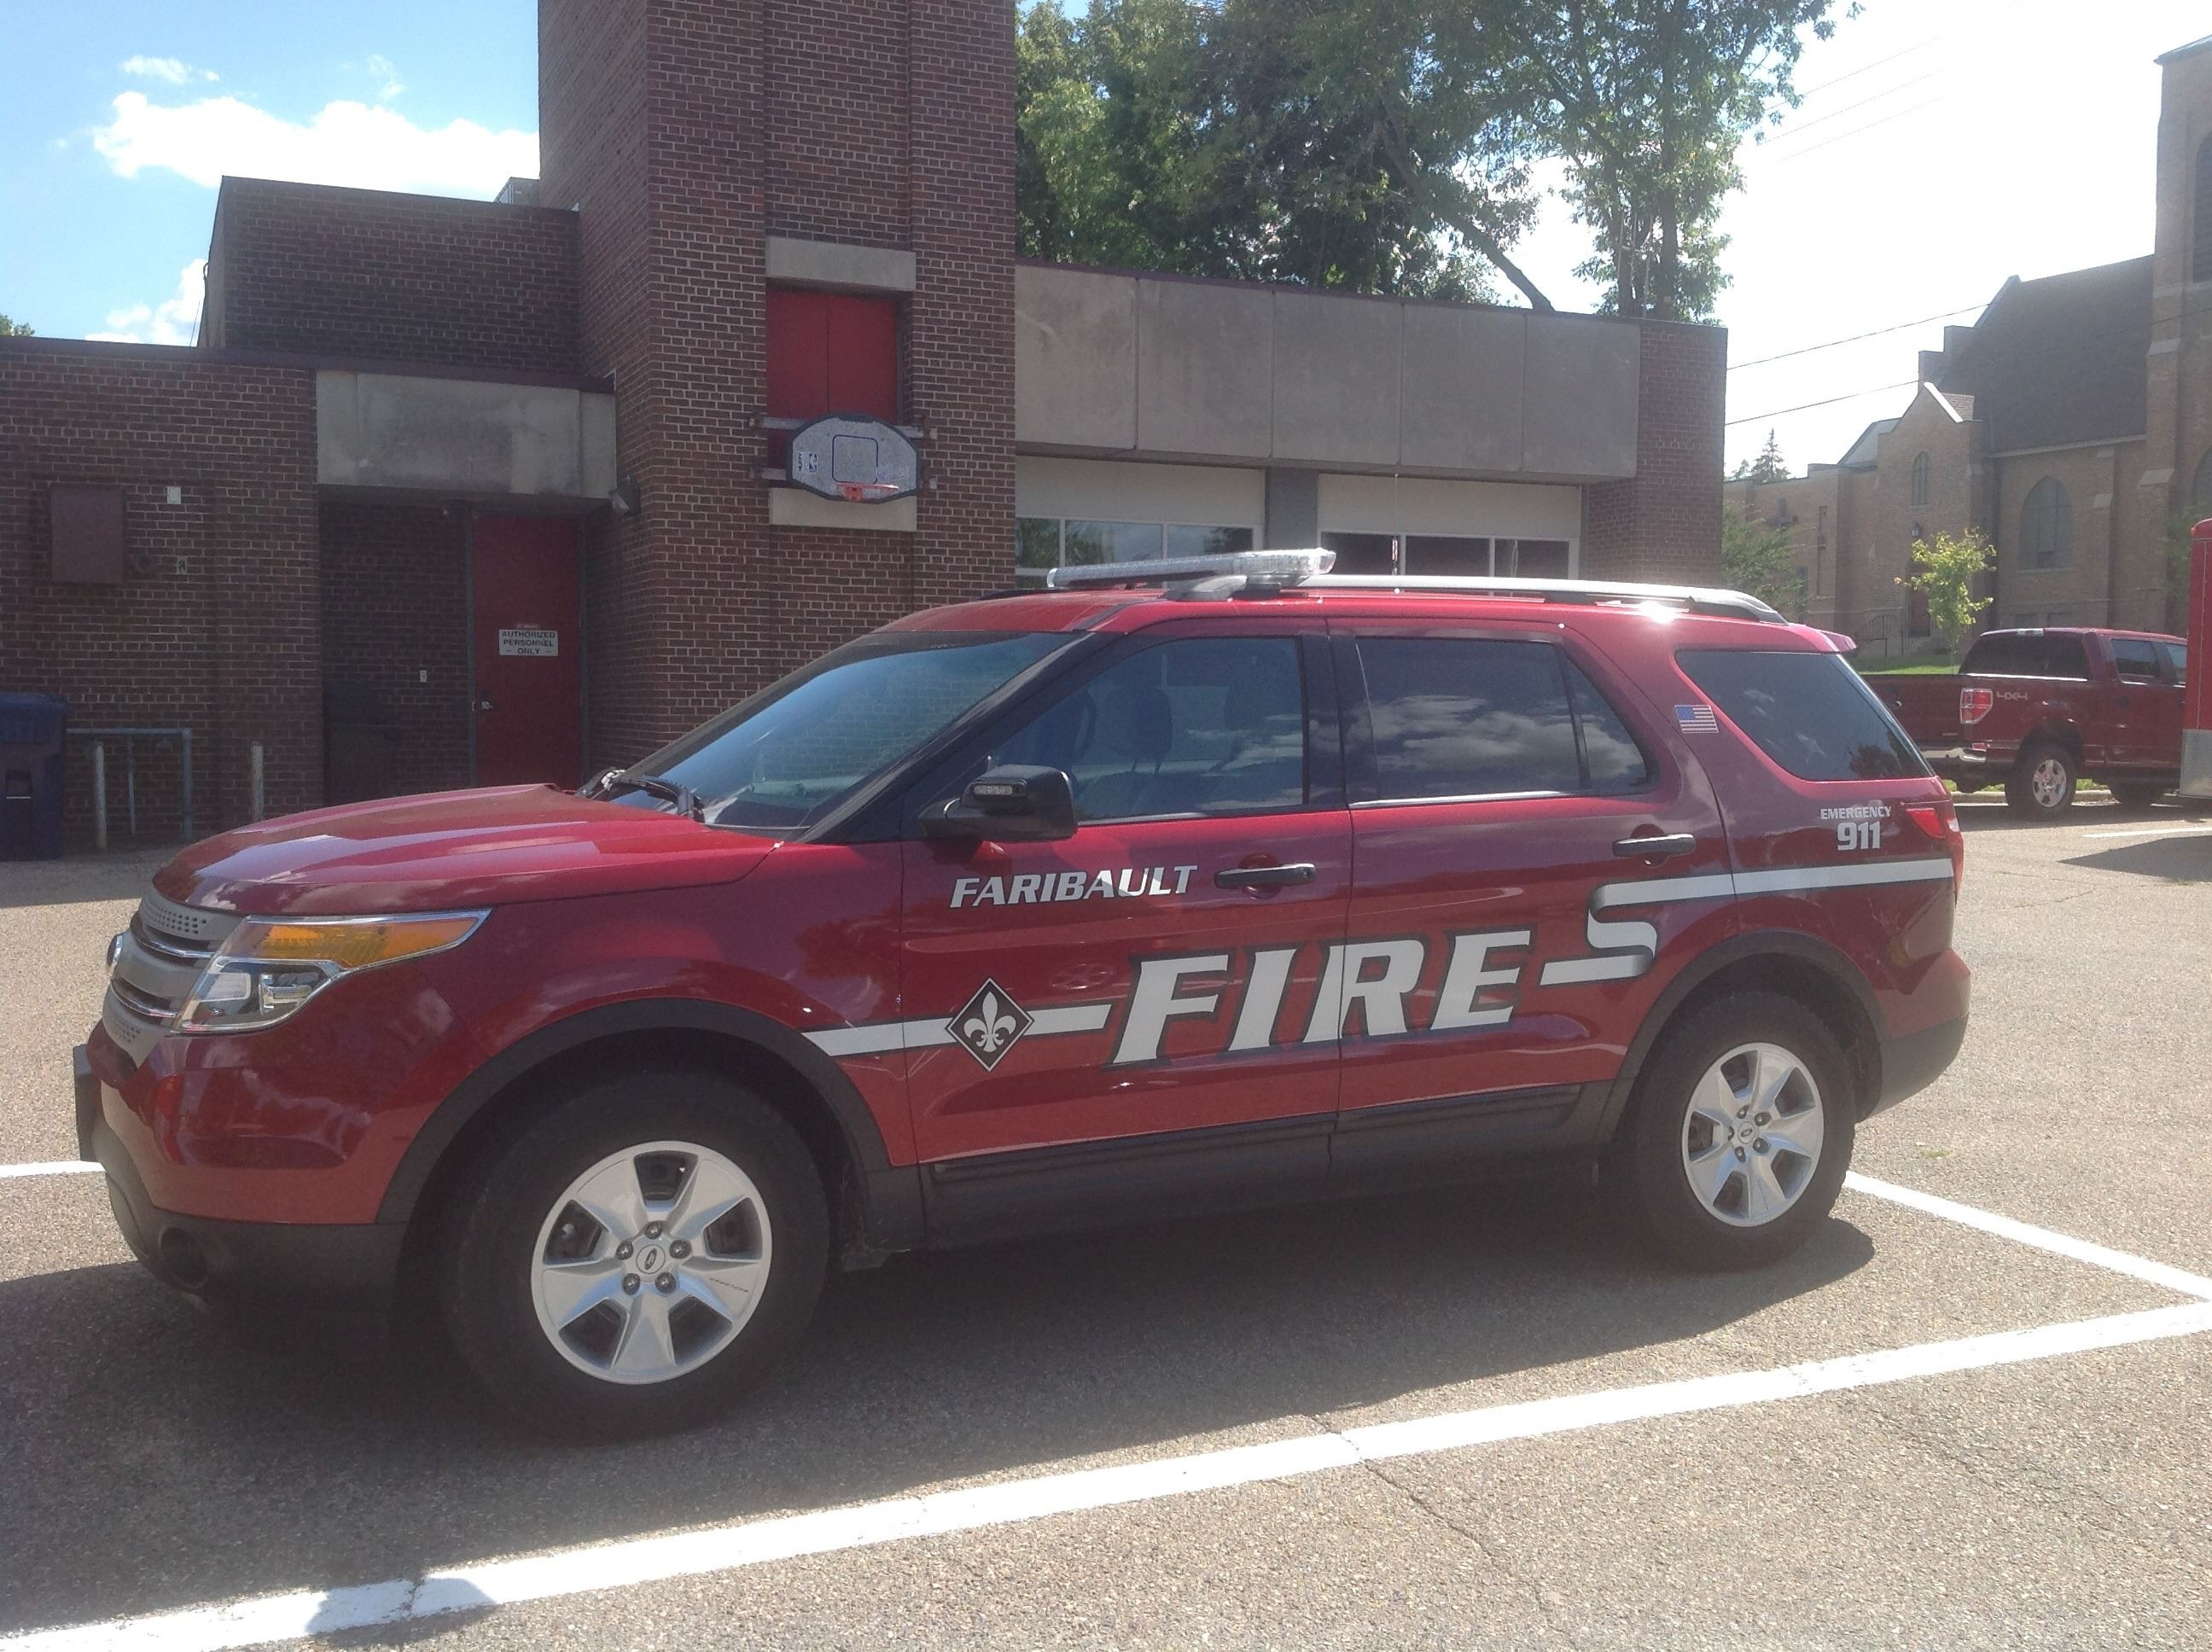 2101 Fire Chief Vehicle